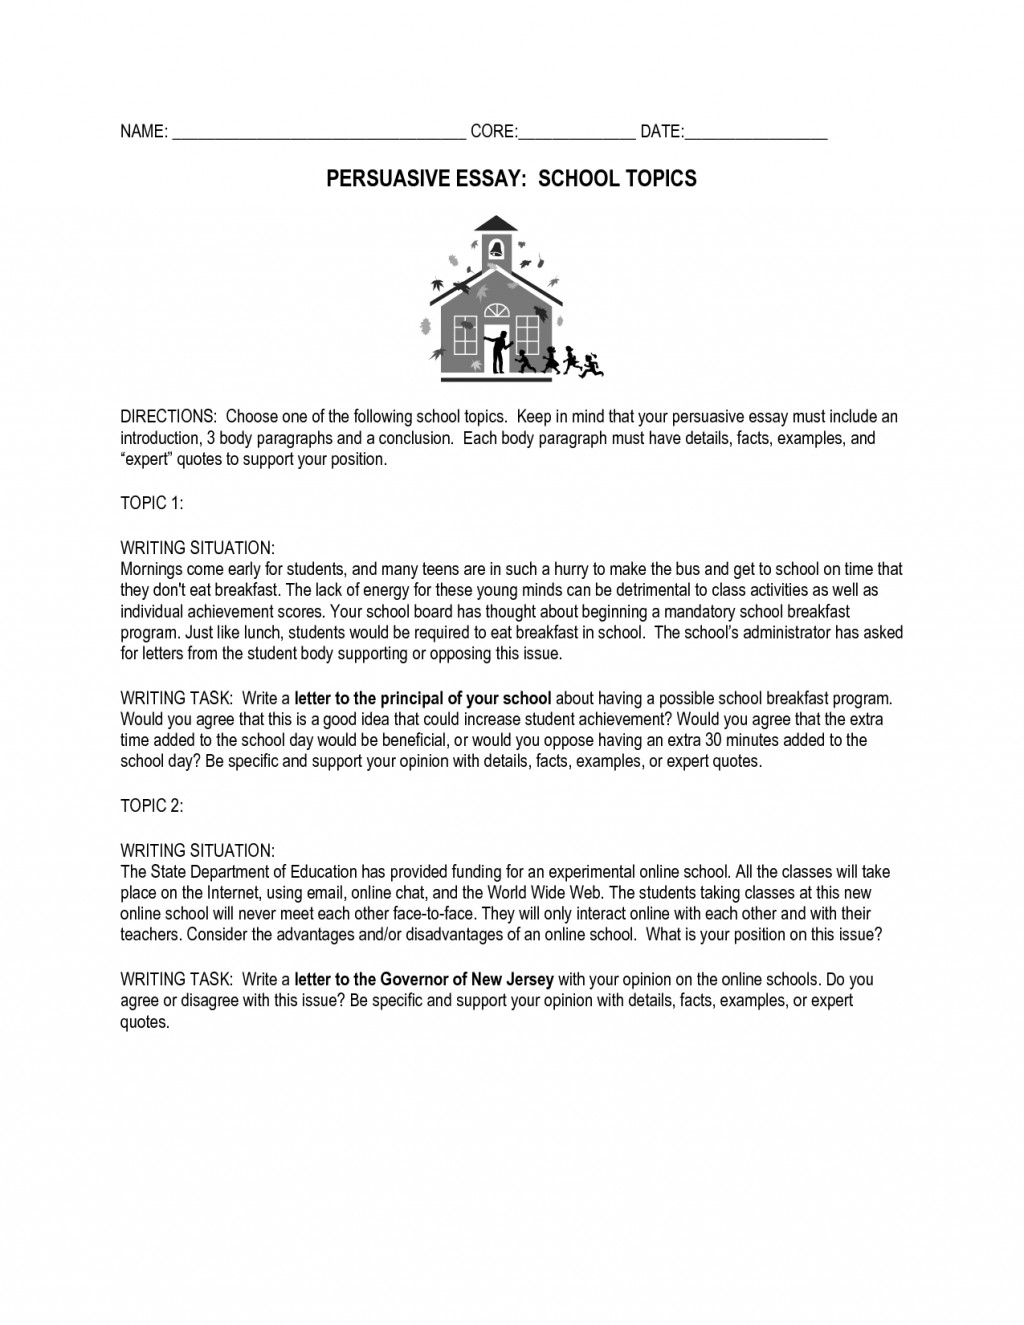 014 Conclusion To Persuasive Essay Writing An Argumentative On School Outstanding Good A Example The Strongest Large